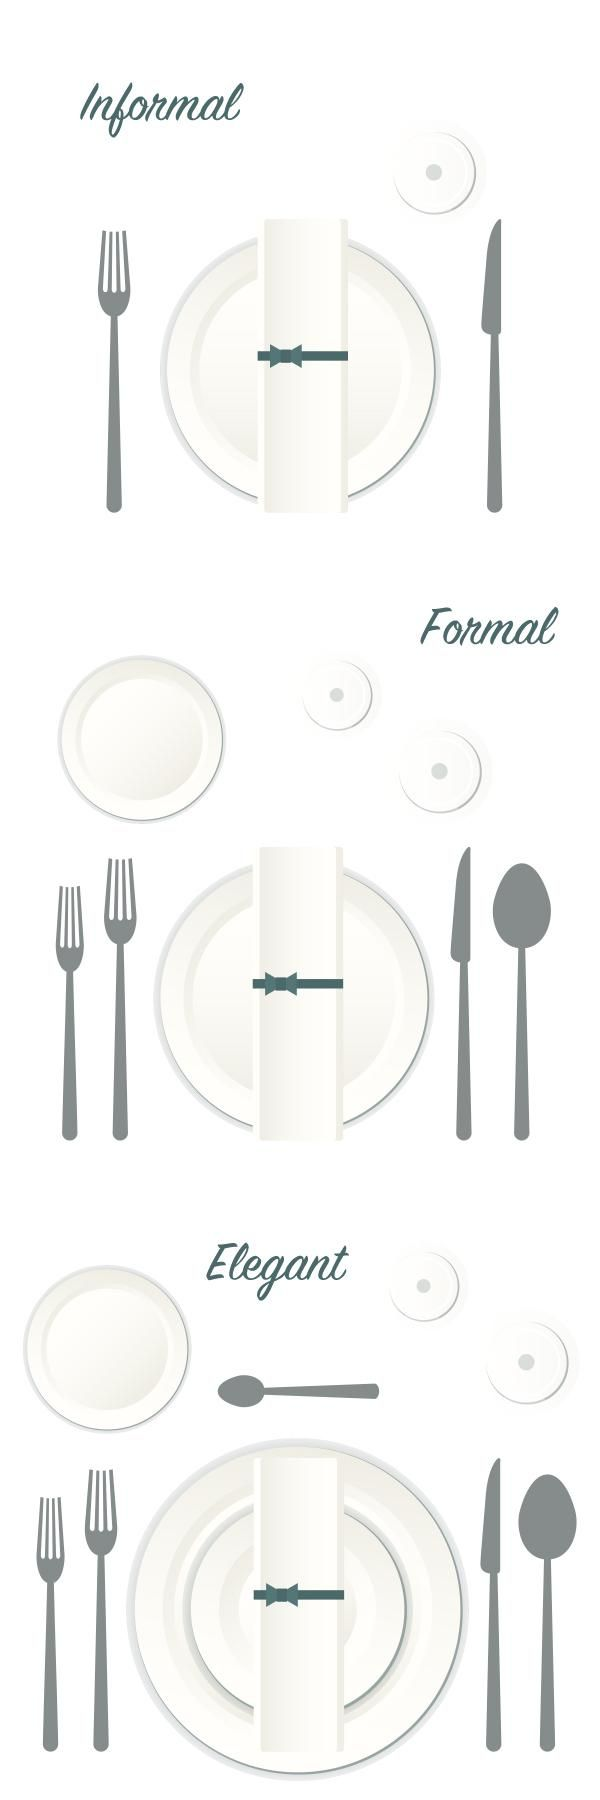 Formal dinner table setting etiquette - Table Place Settings For Every Occasion Dinner Table Settings Events And Tables